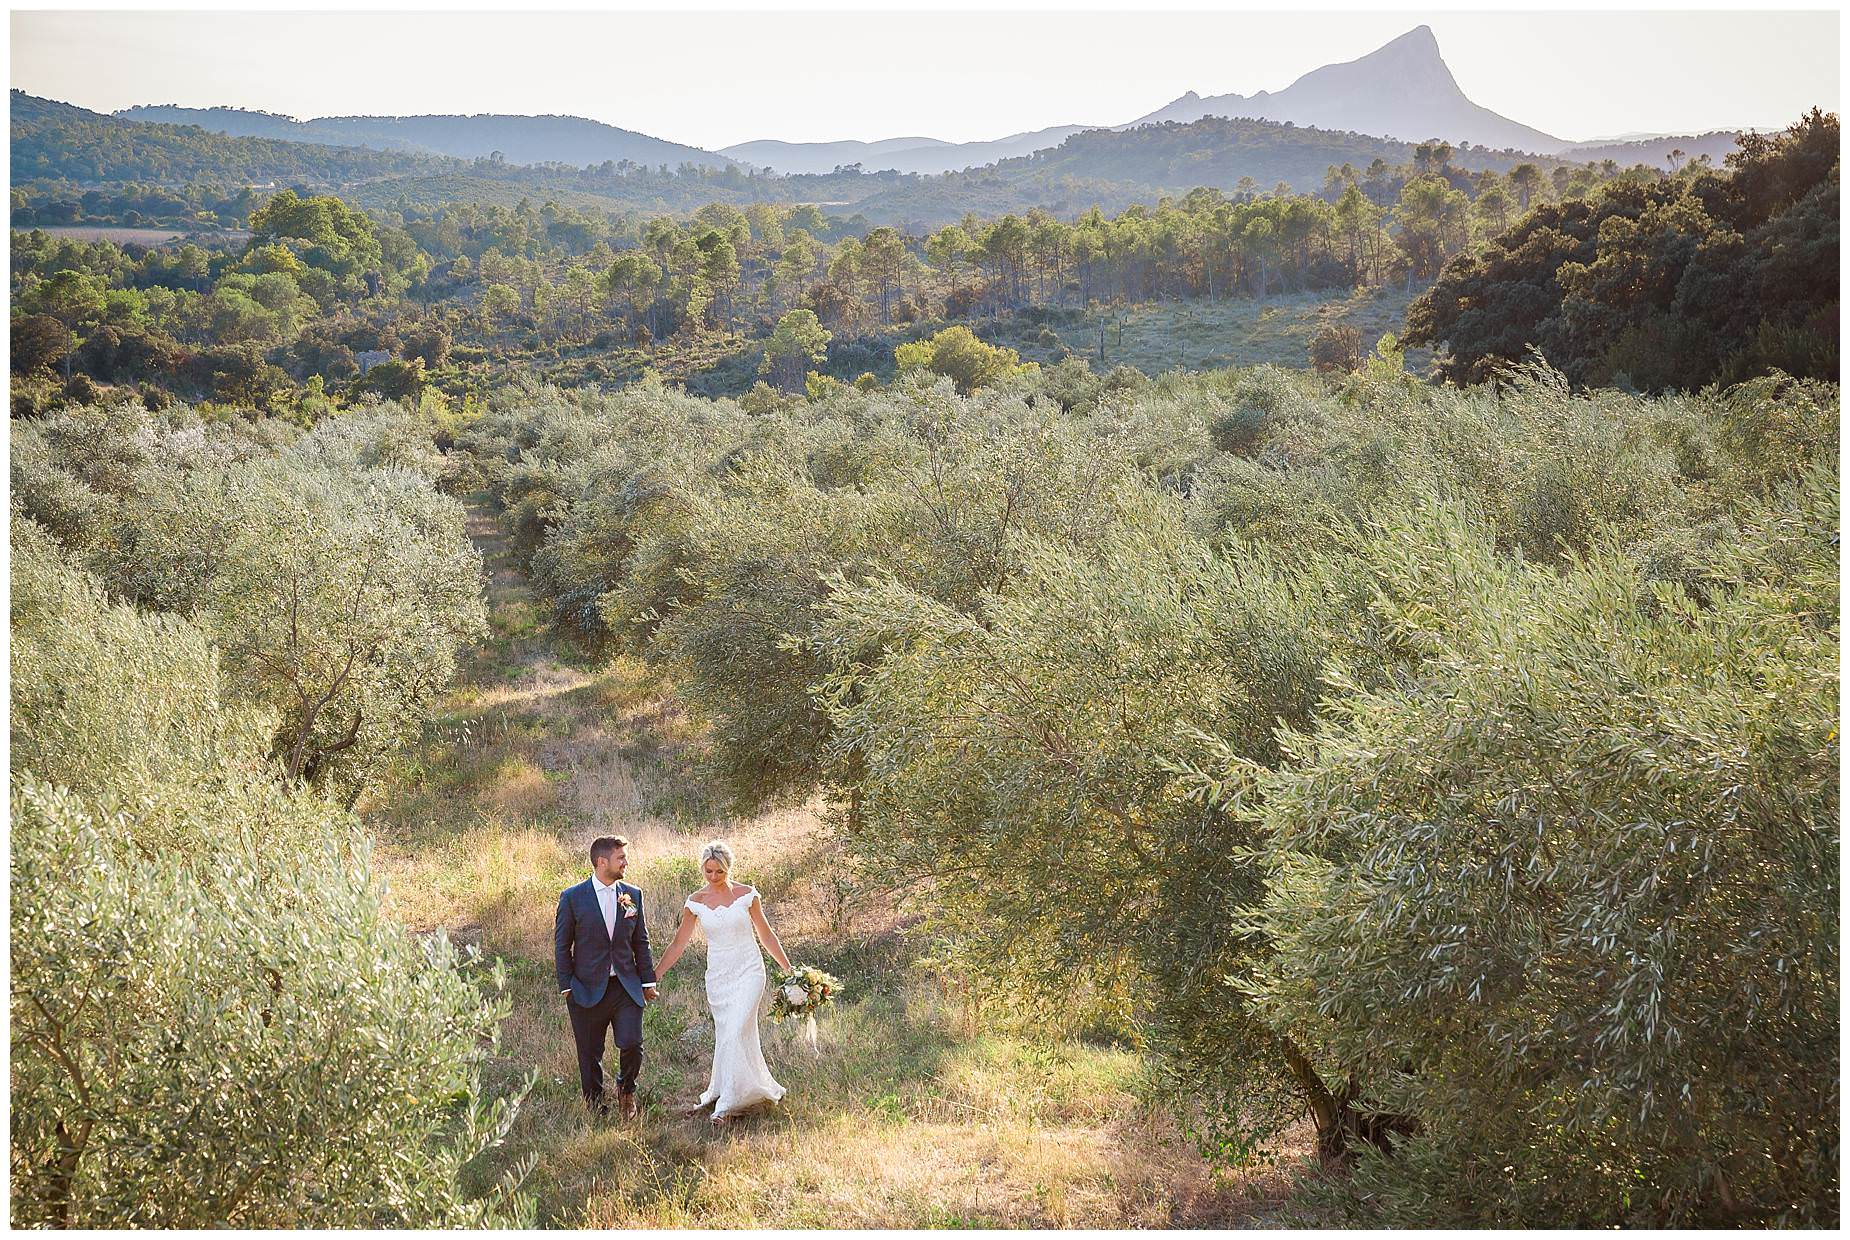 wedding photographer Domaine Saint Germain